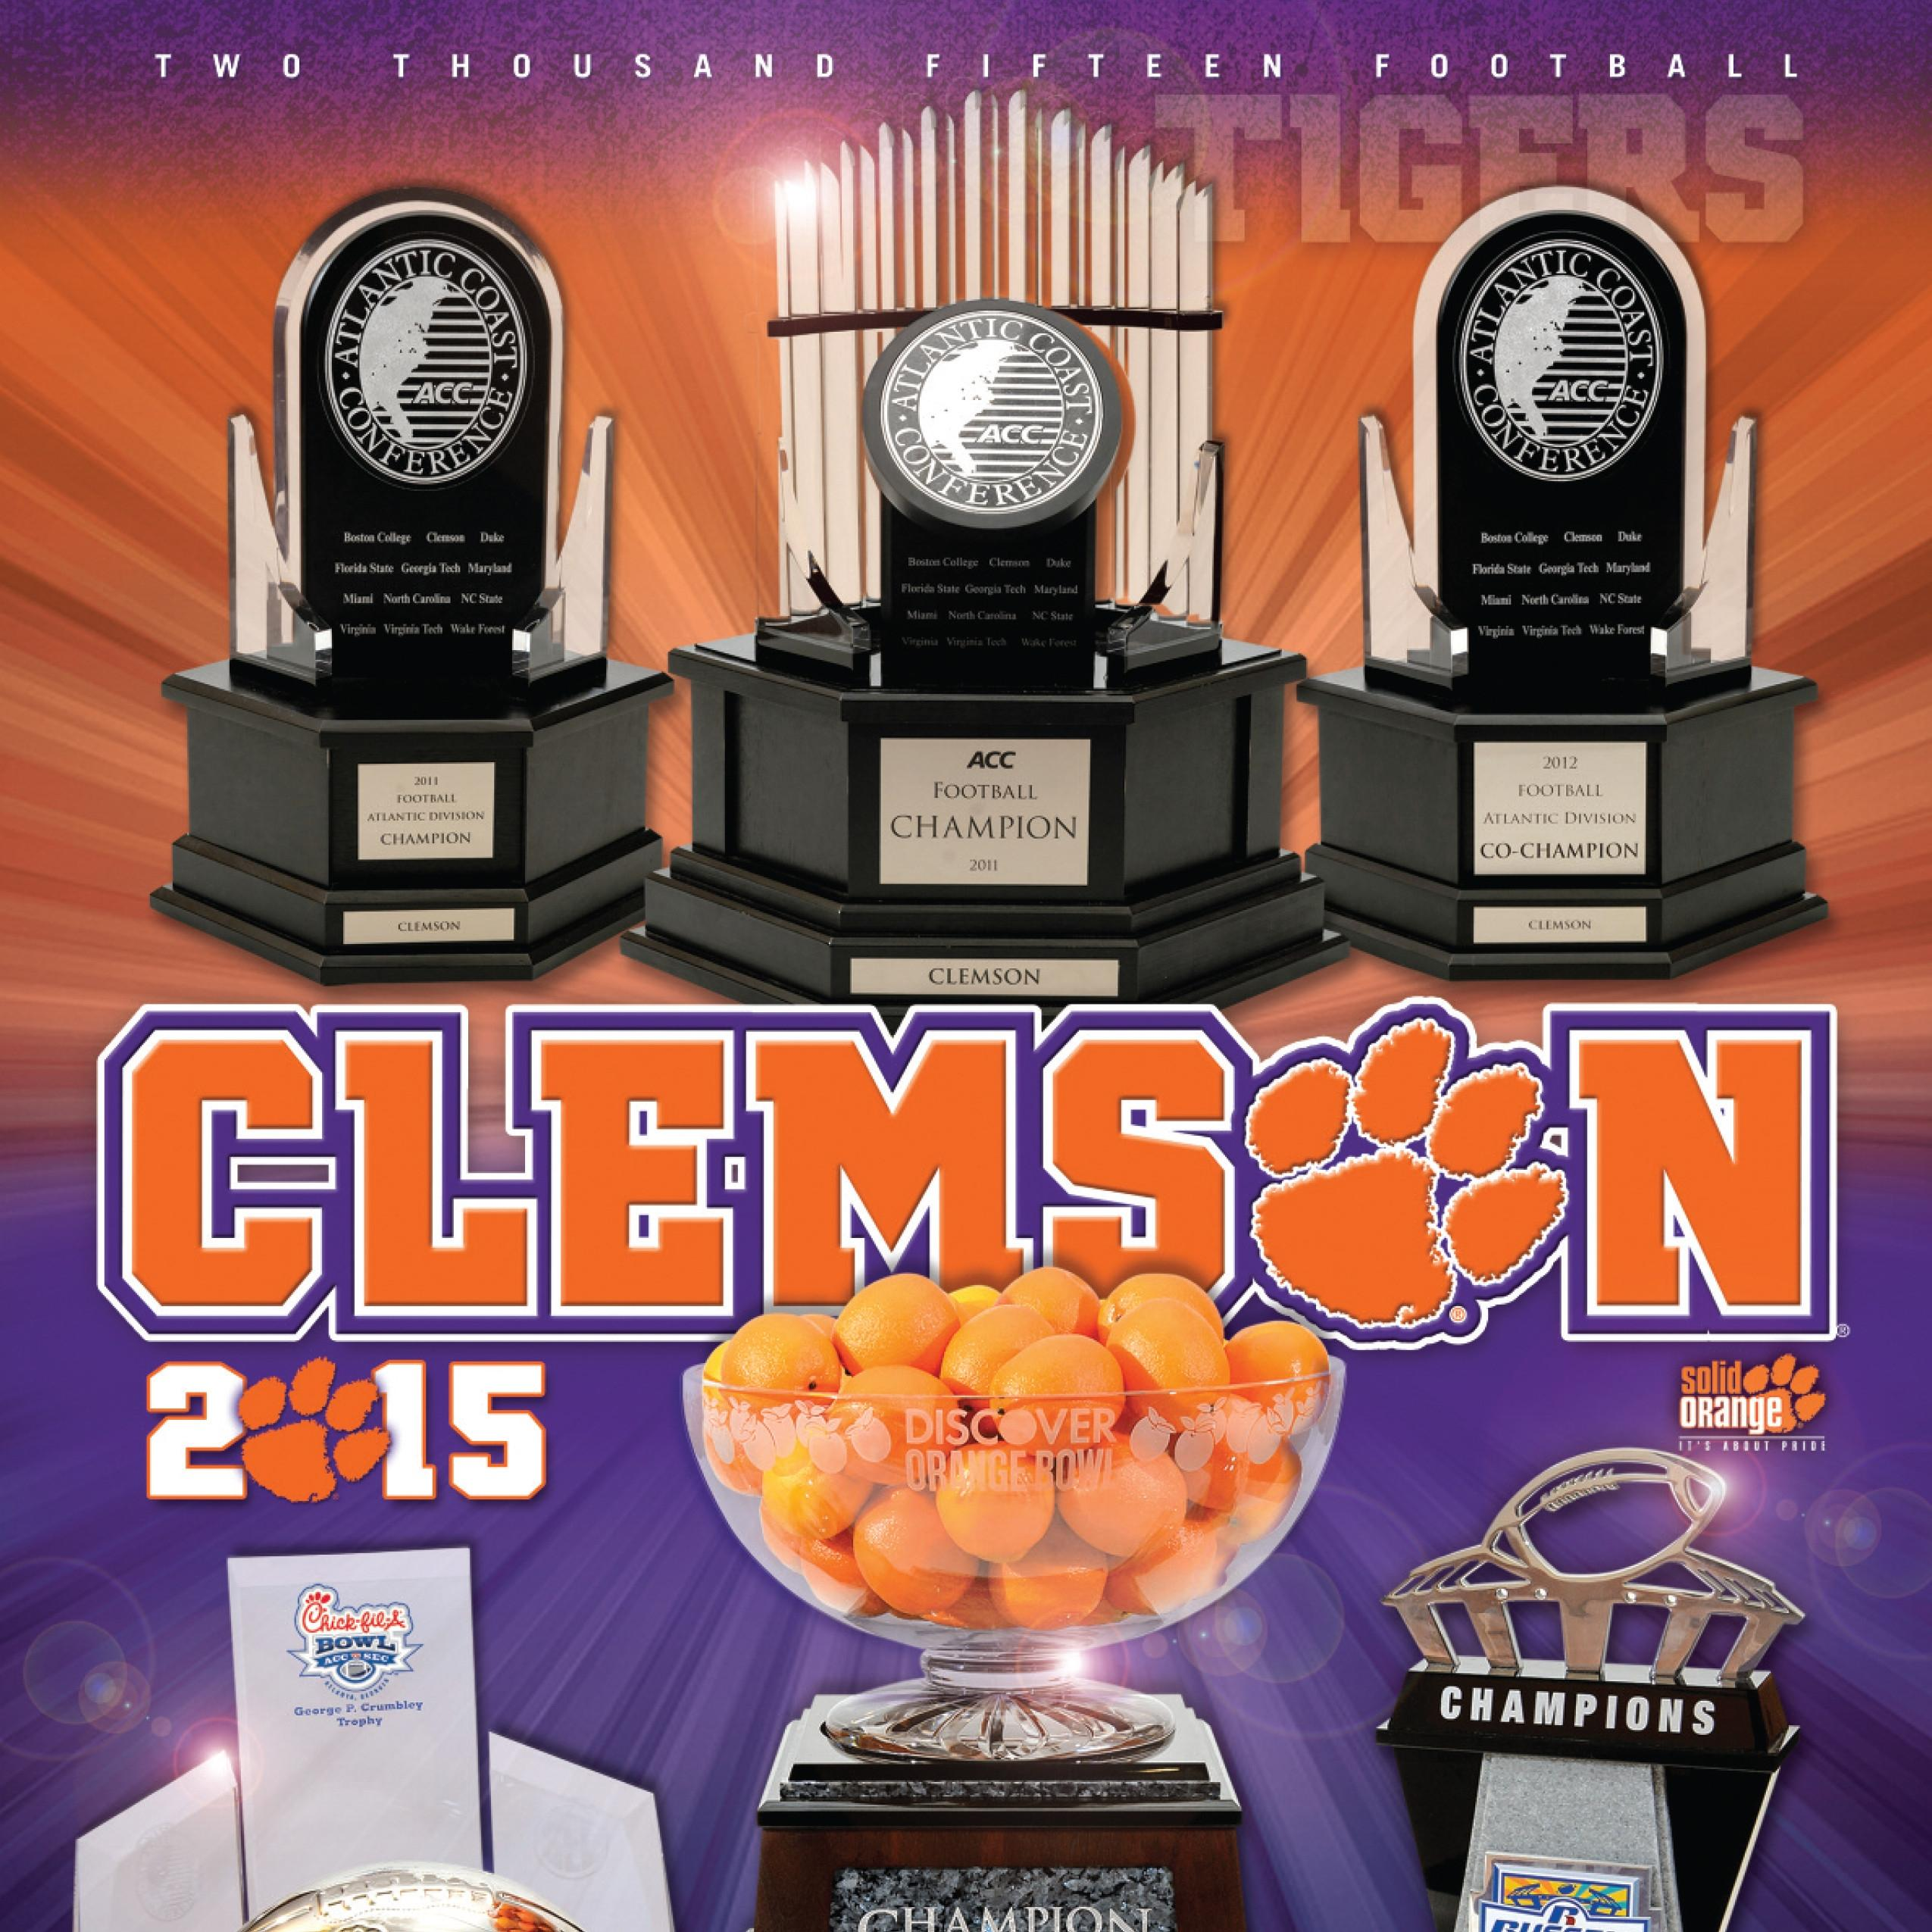 2015 Clemson Football Media Guide Now Available